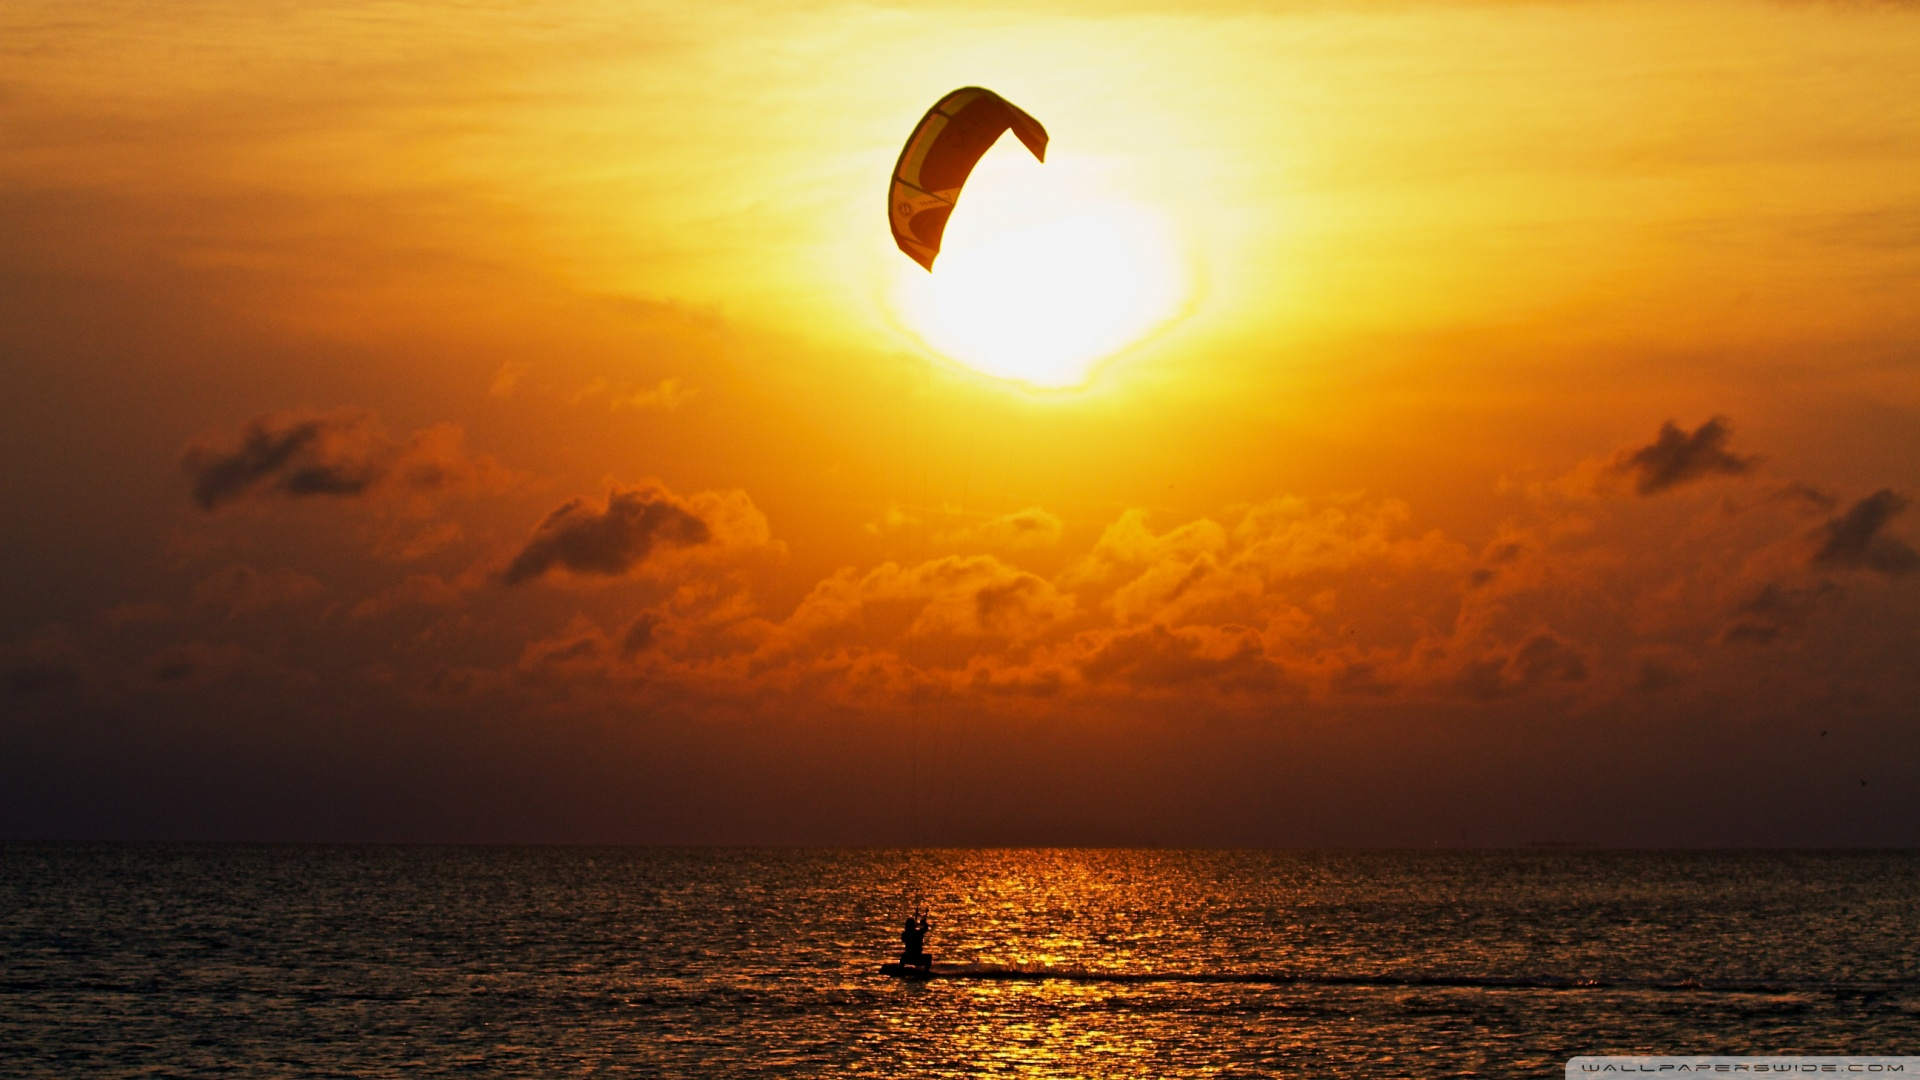 Kitesurfing At Sunset Wallpaper 1920x1080 Kitesurfing At Sunset 1920x1080